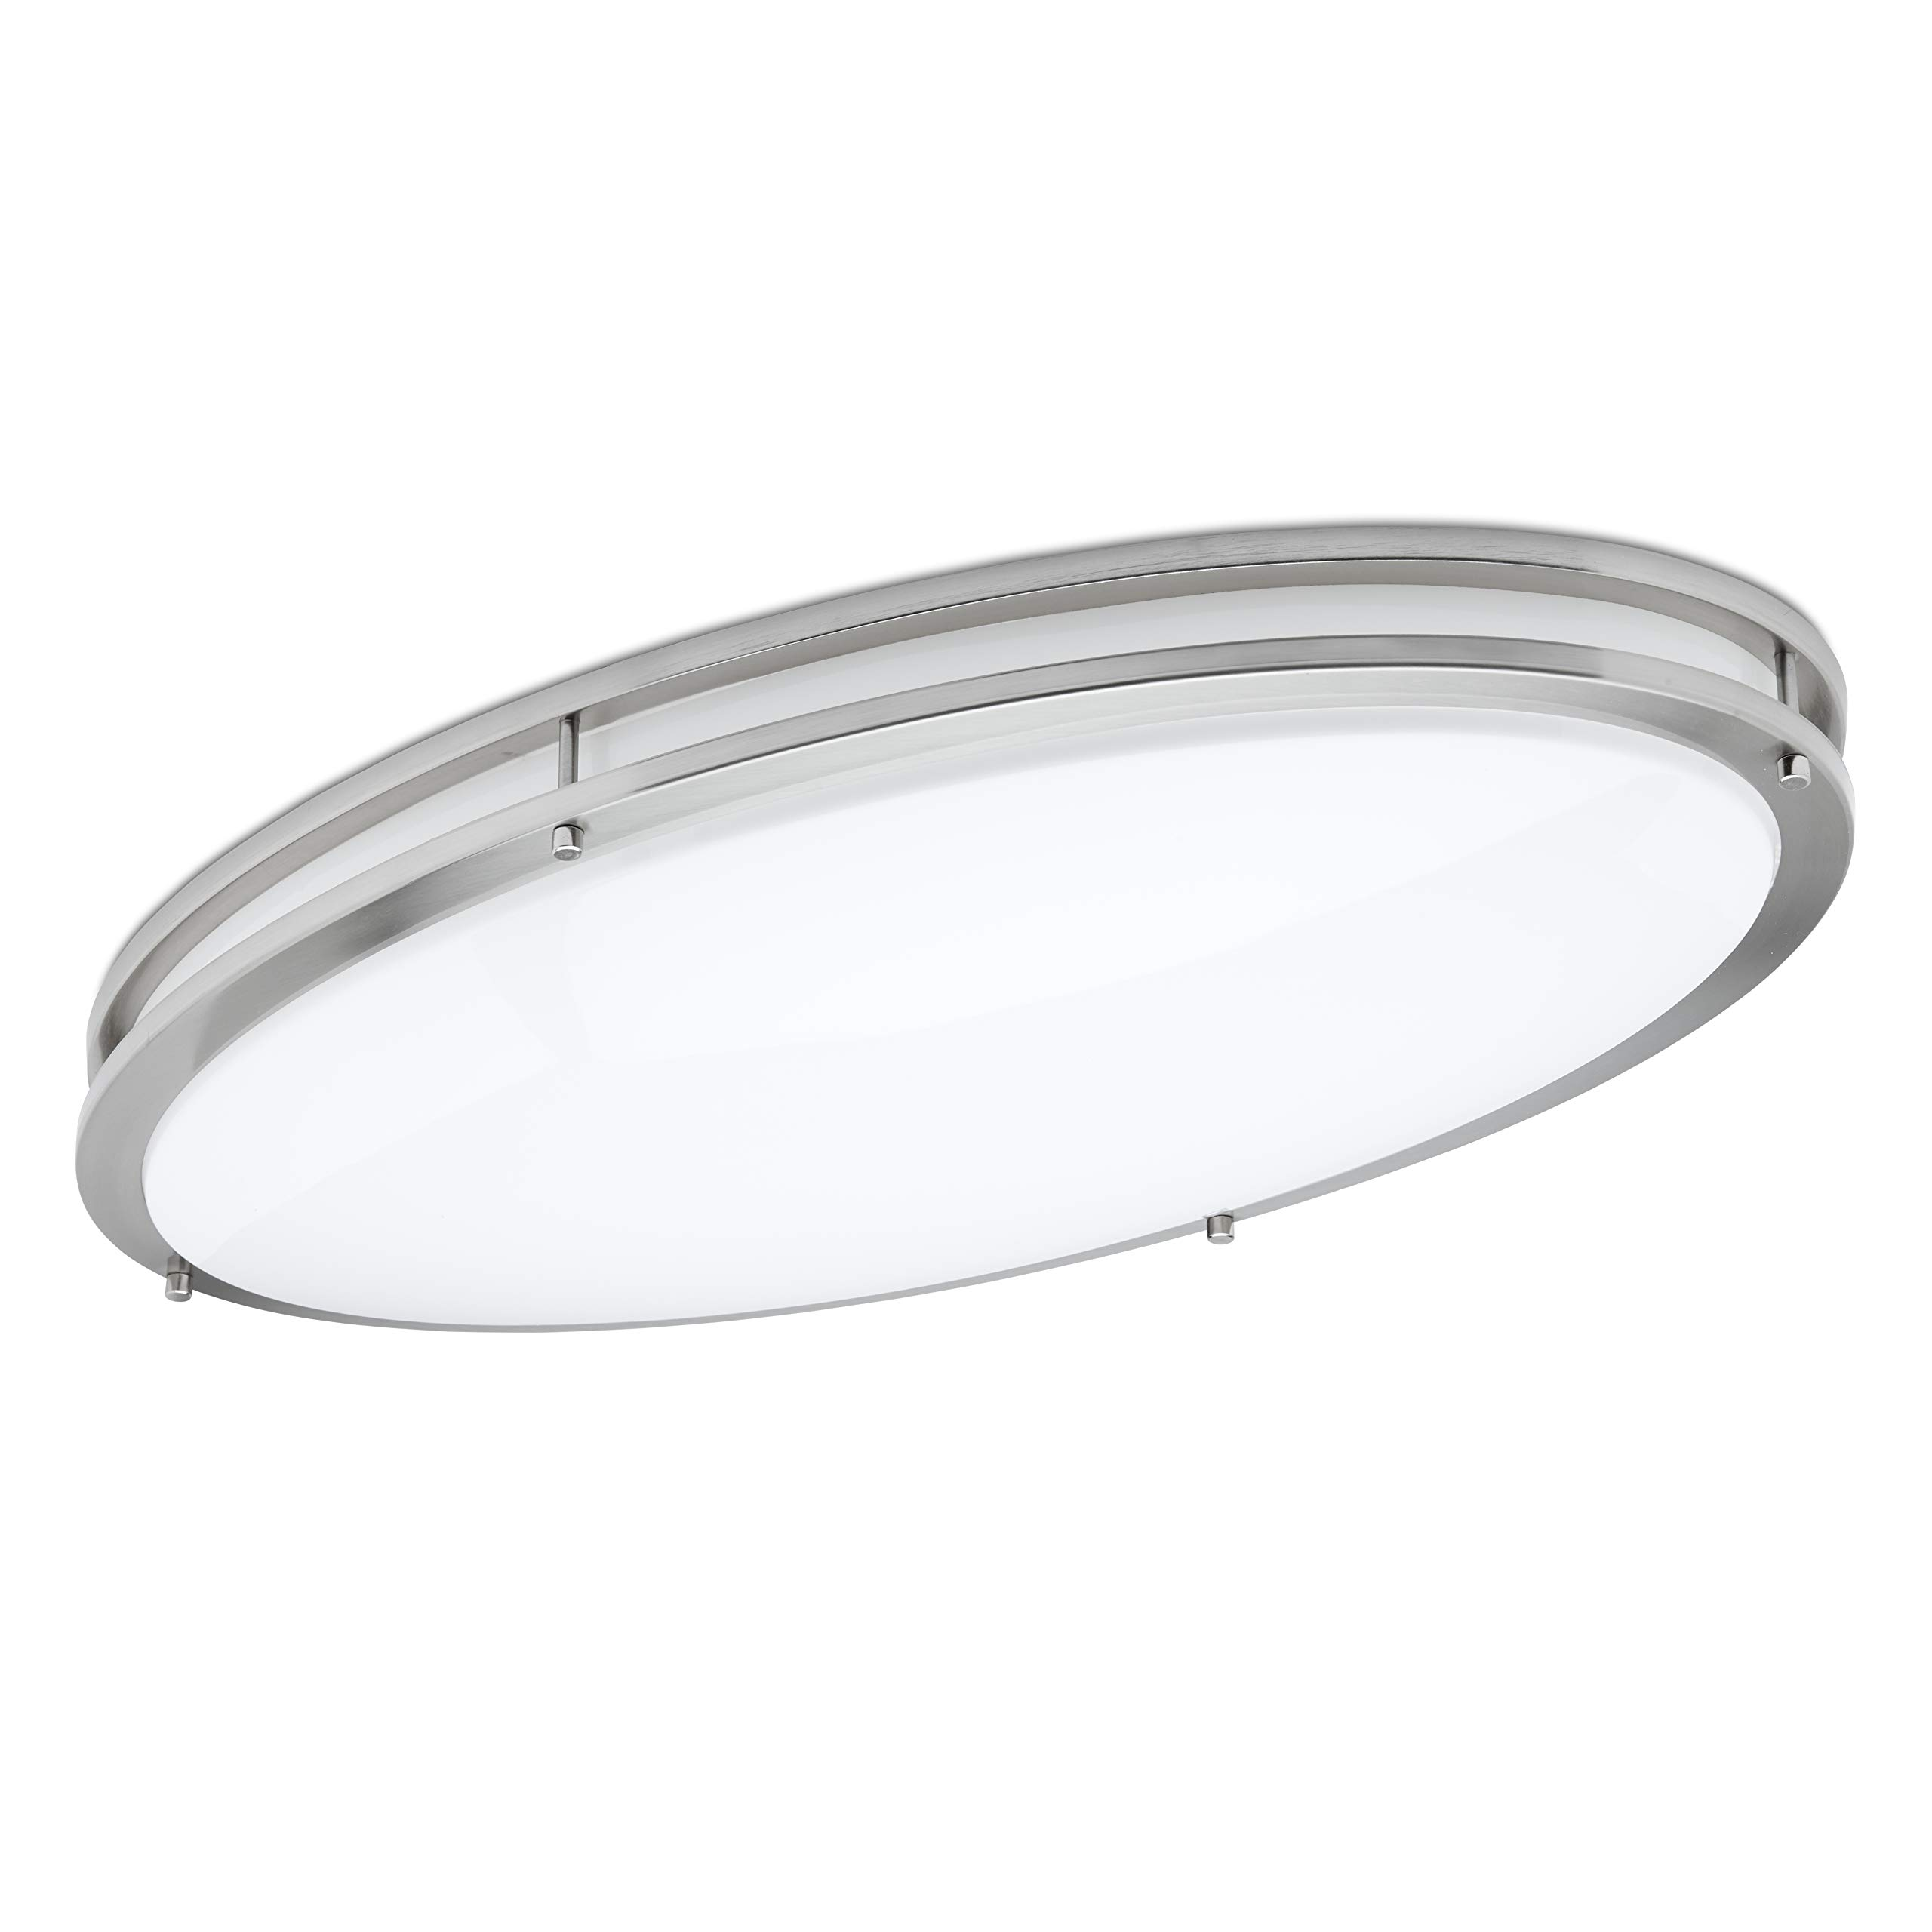 Green Beam LED Light Fixture, Flush Mount Light Fixture, Brushed Nickel Ceiling Light Fixture, Kitchen Light Fixtures, Bathroom Fixture, 58W, 5000K White Light, 5000 Lumens, 32 Inch Oval Light Fixture